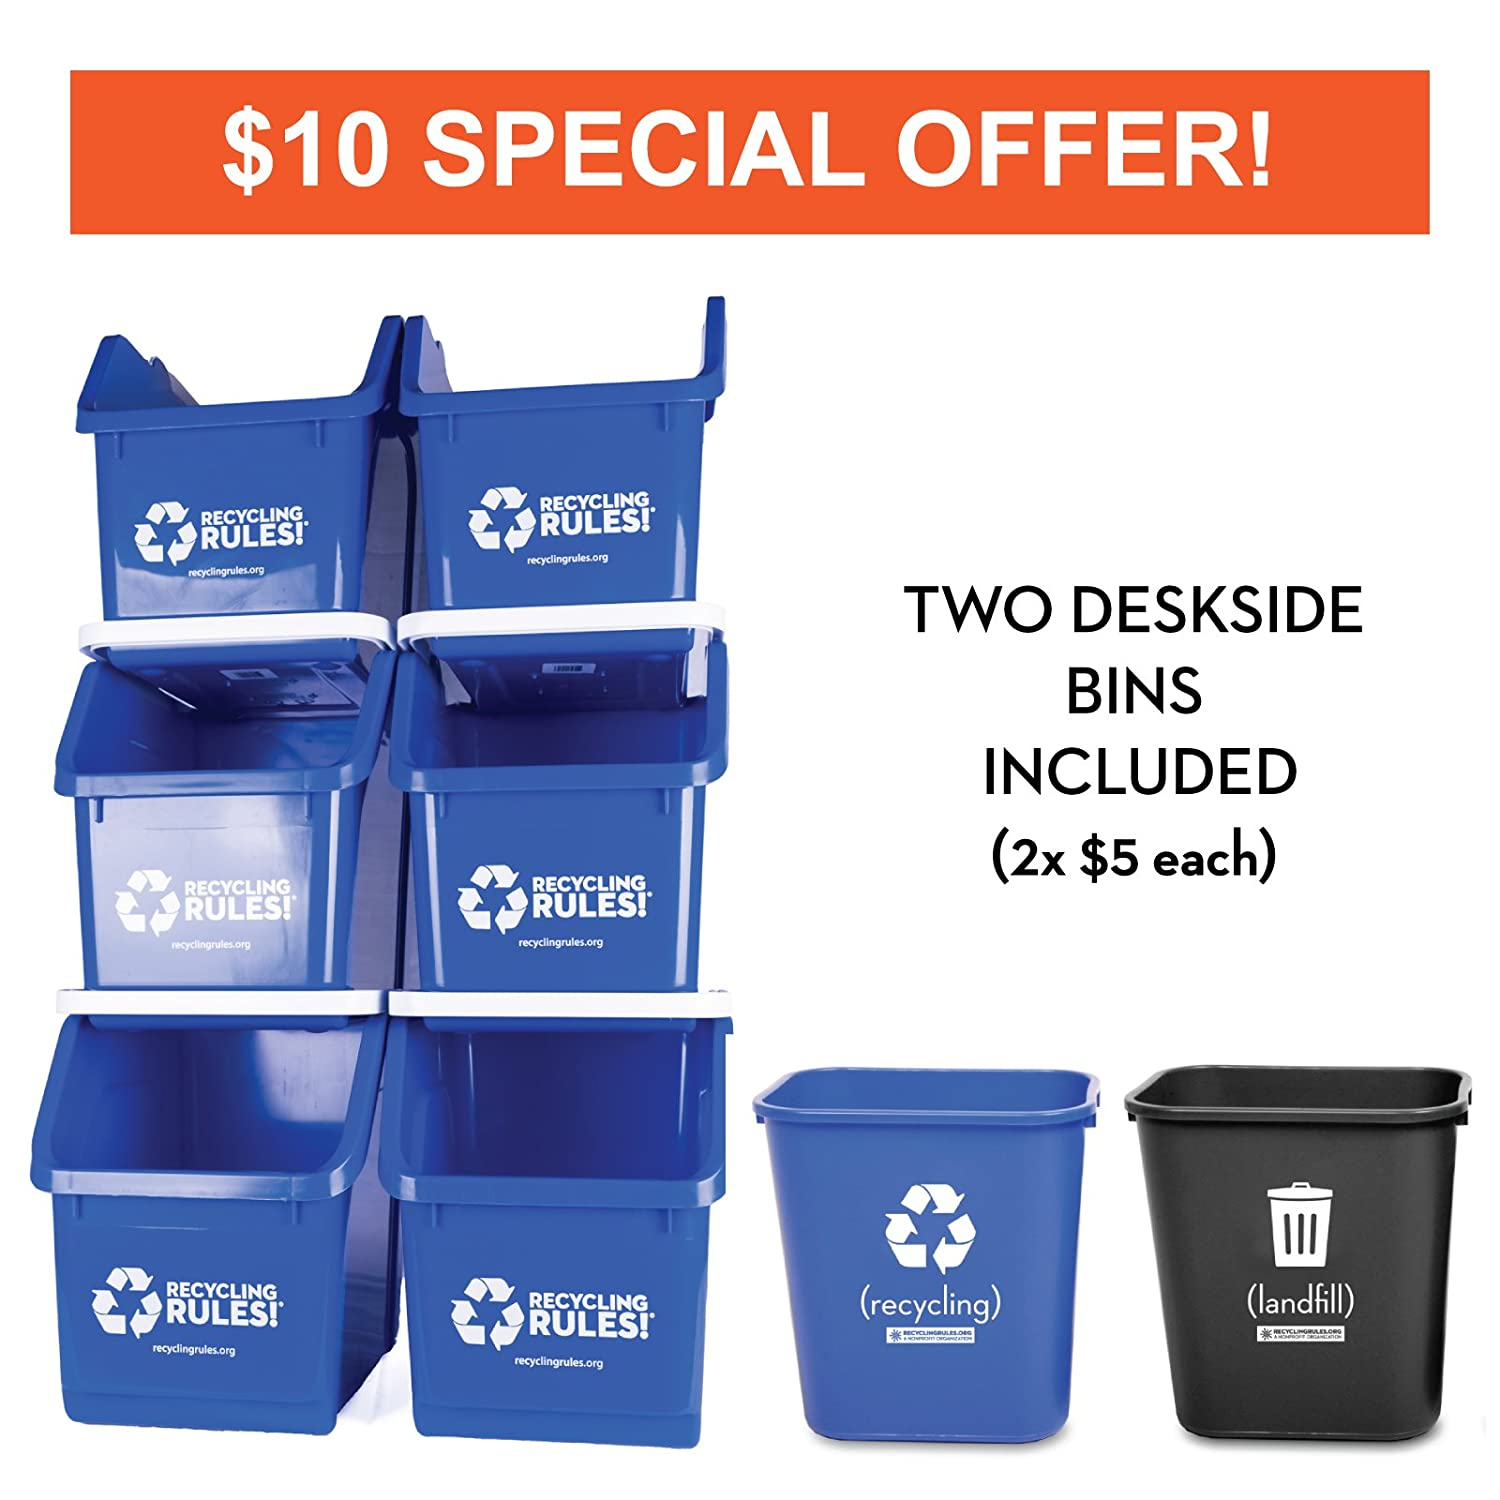 6 Pack of Bins - Blue Stackable Recycling Bin Container with Handle 6 Gallon + 2 Deskside Bins